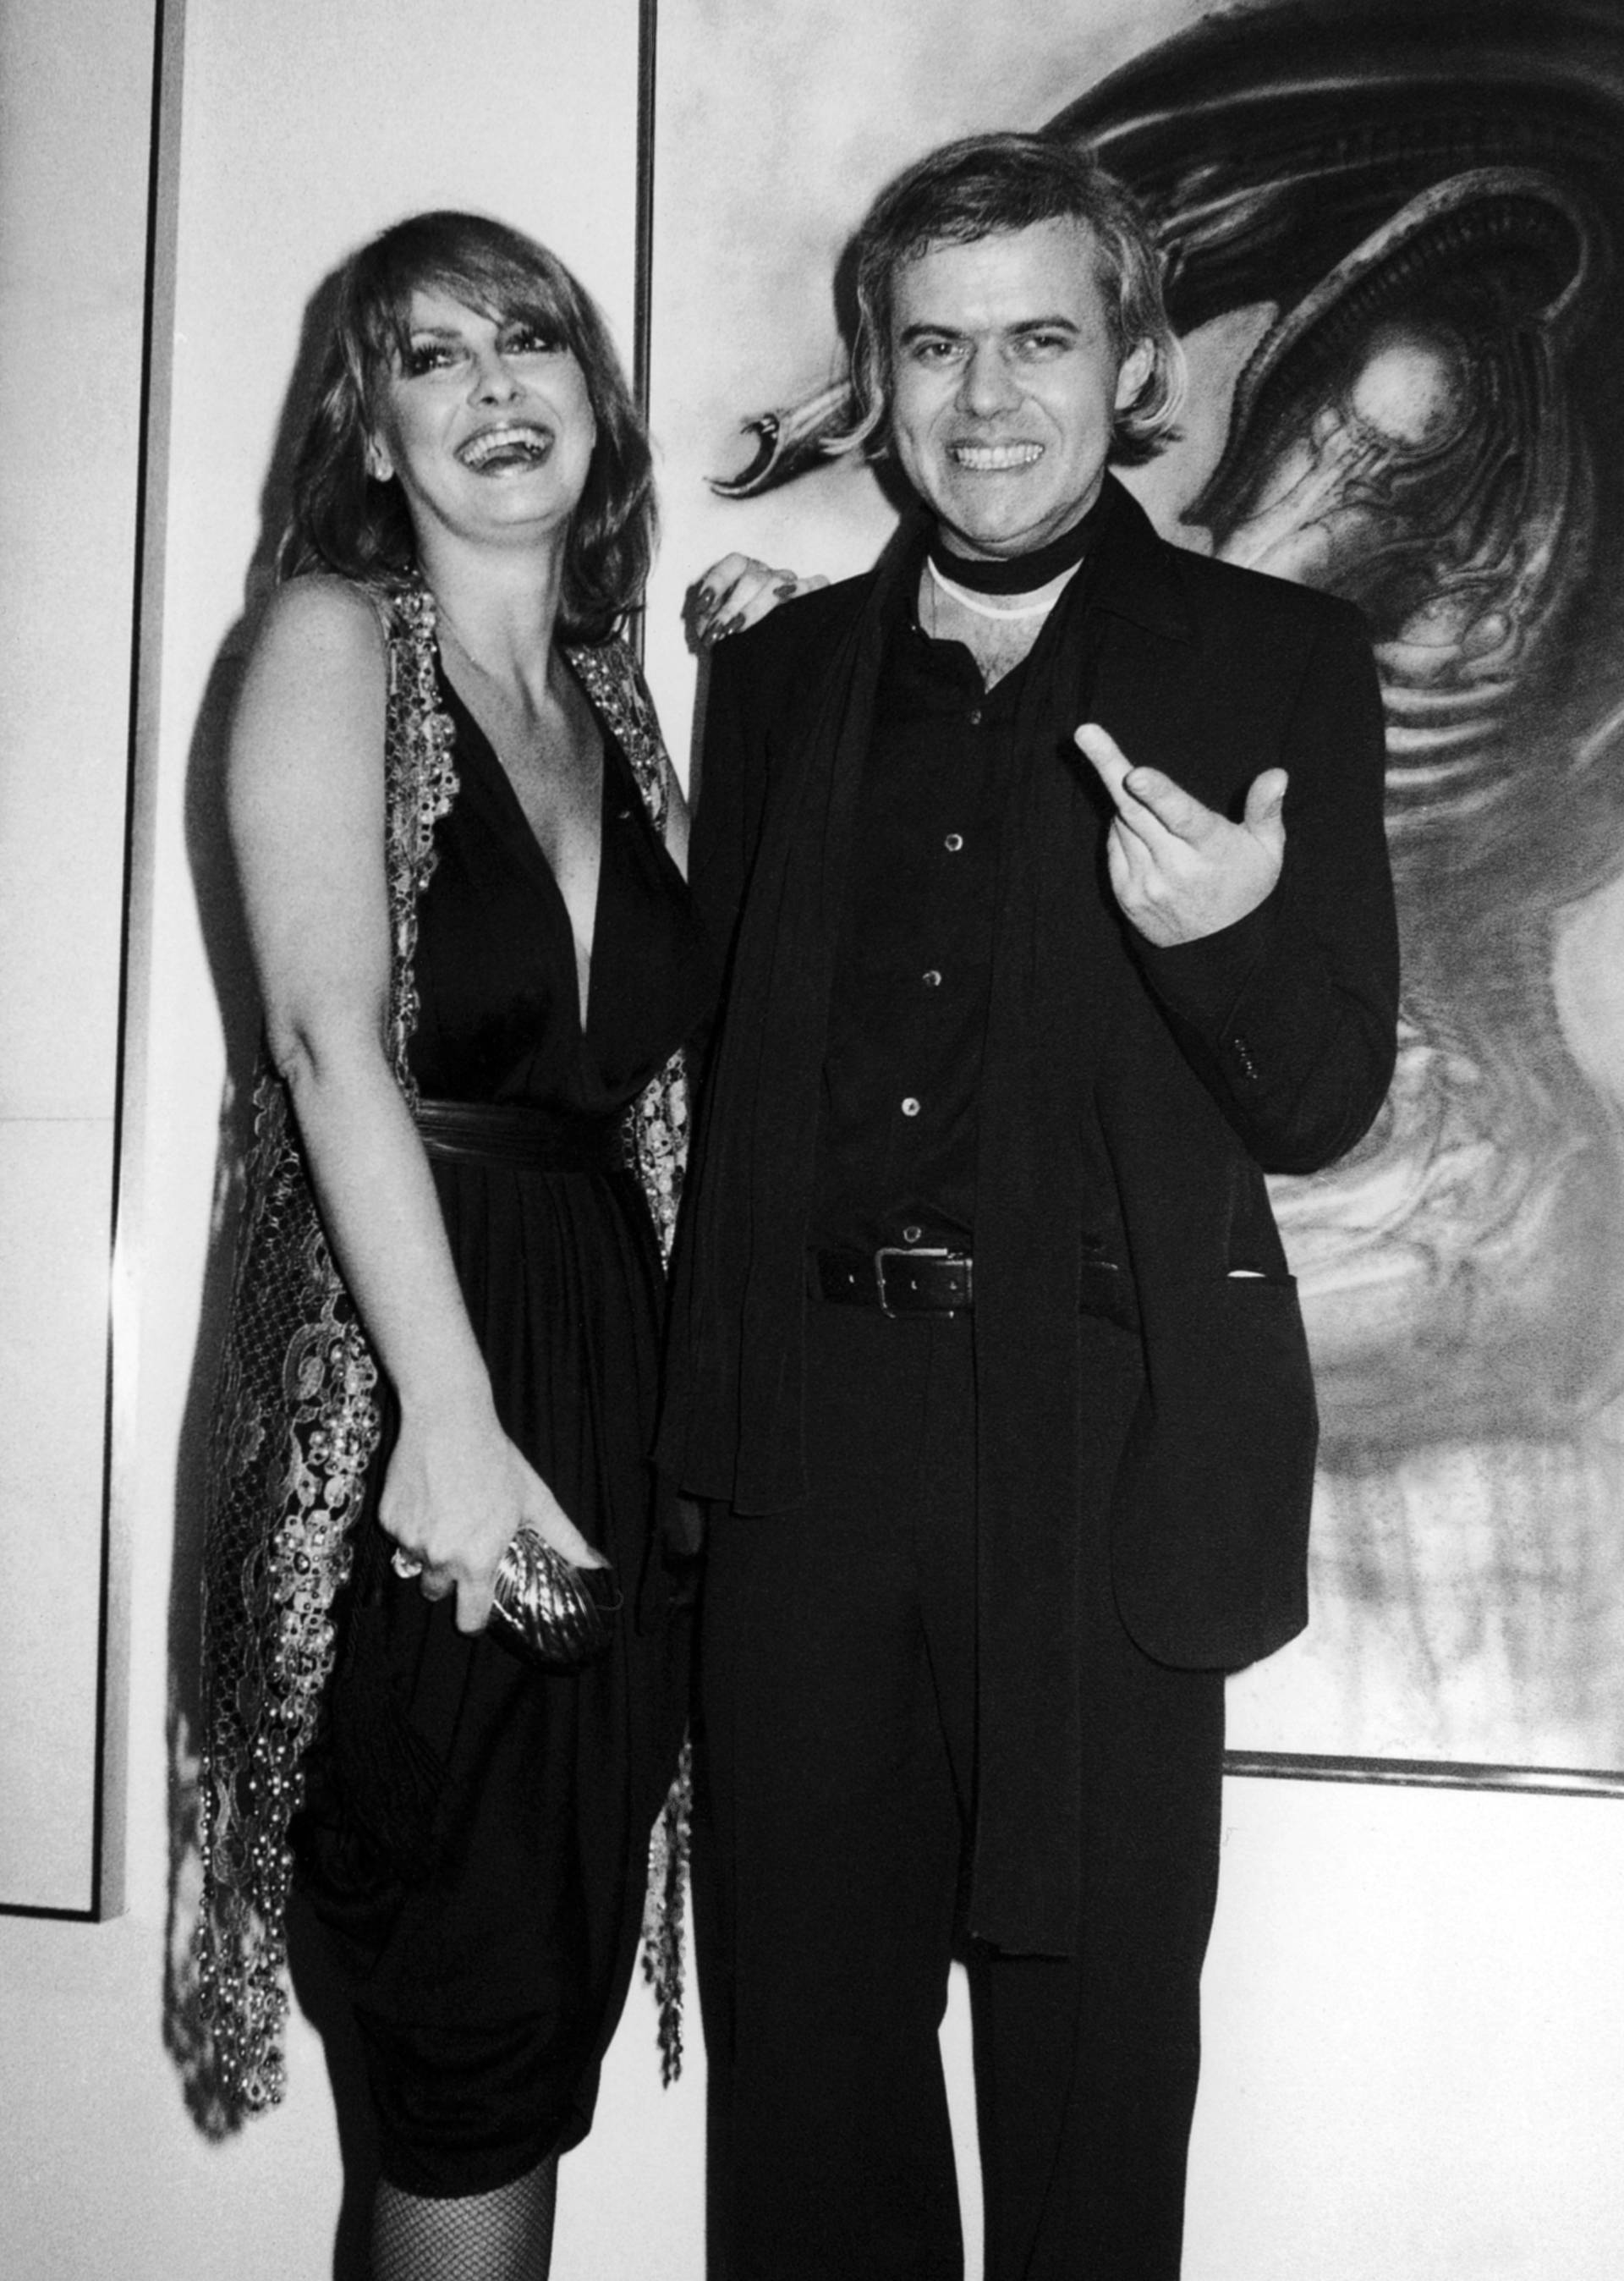 Swiss artist H.R. Giger,  right, poses with model Anneka Vasta at the opening of an exhibition in New York.